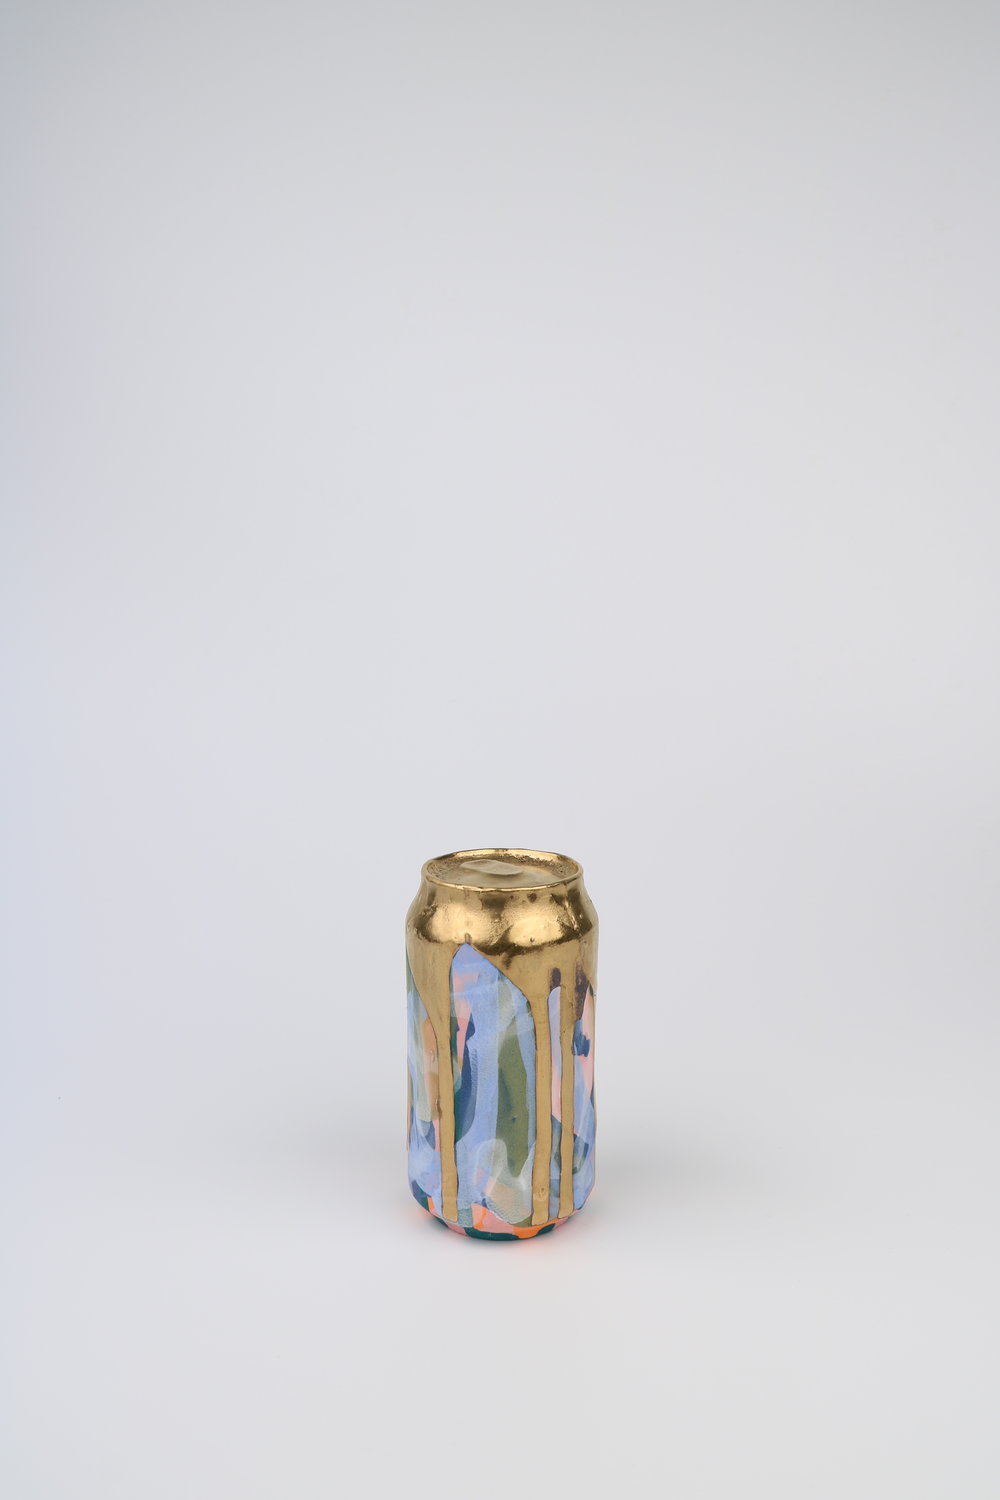 Cindy Lisica Gallery - Jeff Schwarz - _Beer Can_12_ - ceramic and 24kt gold lustre glaze - 6 x 3 x 3 inches - 2017 - $350.JPG